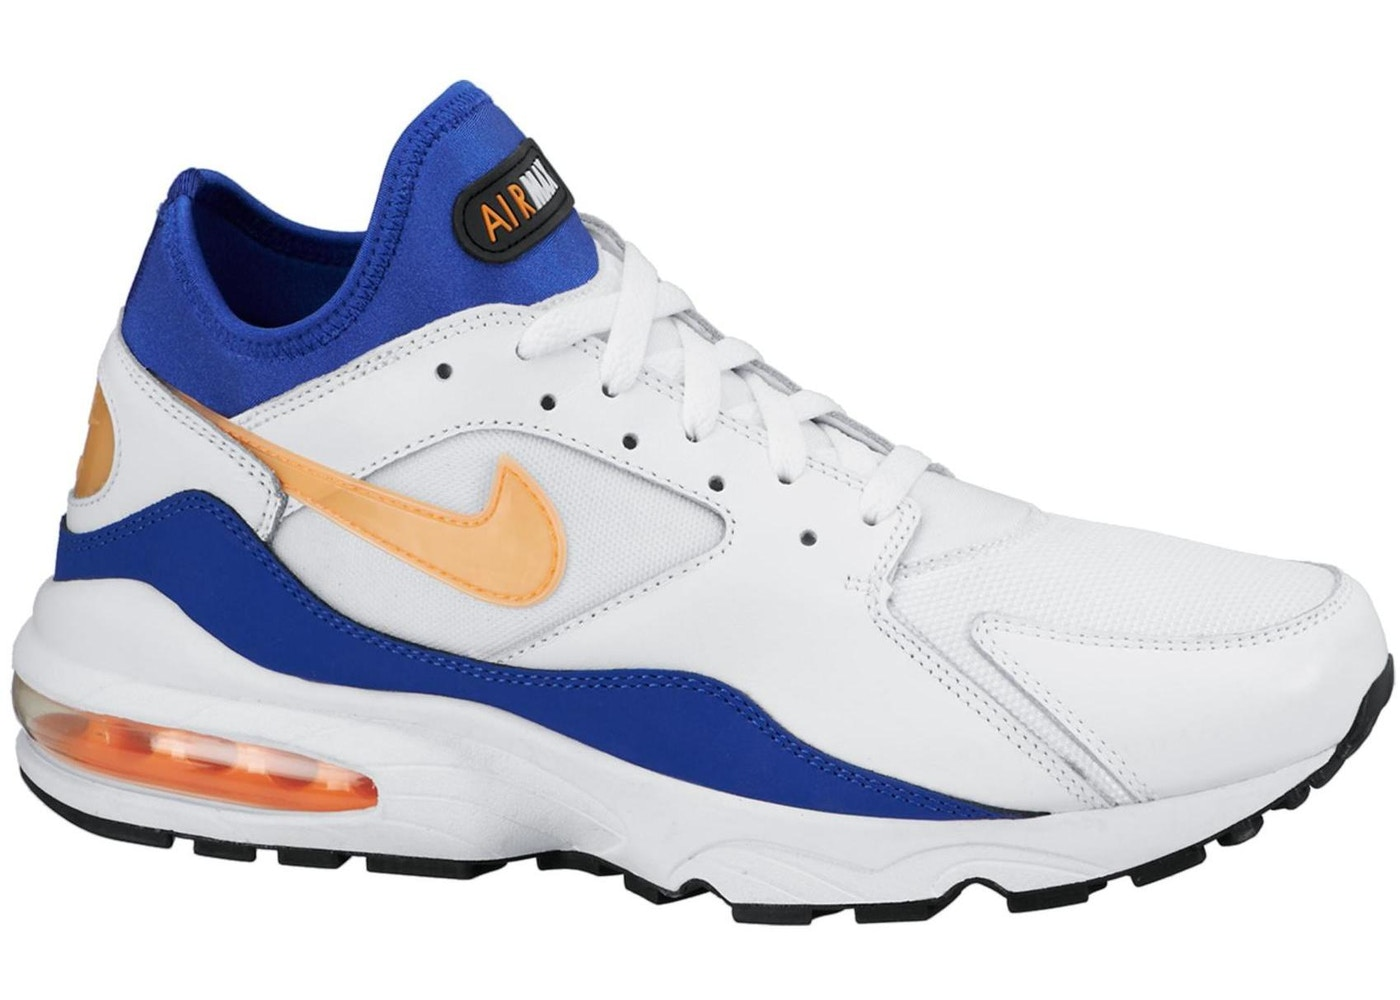 separation shoes eed4a db686 Air Max 93 Bright Citrus